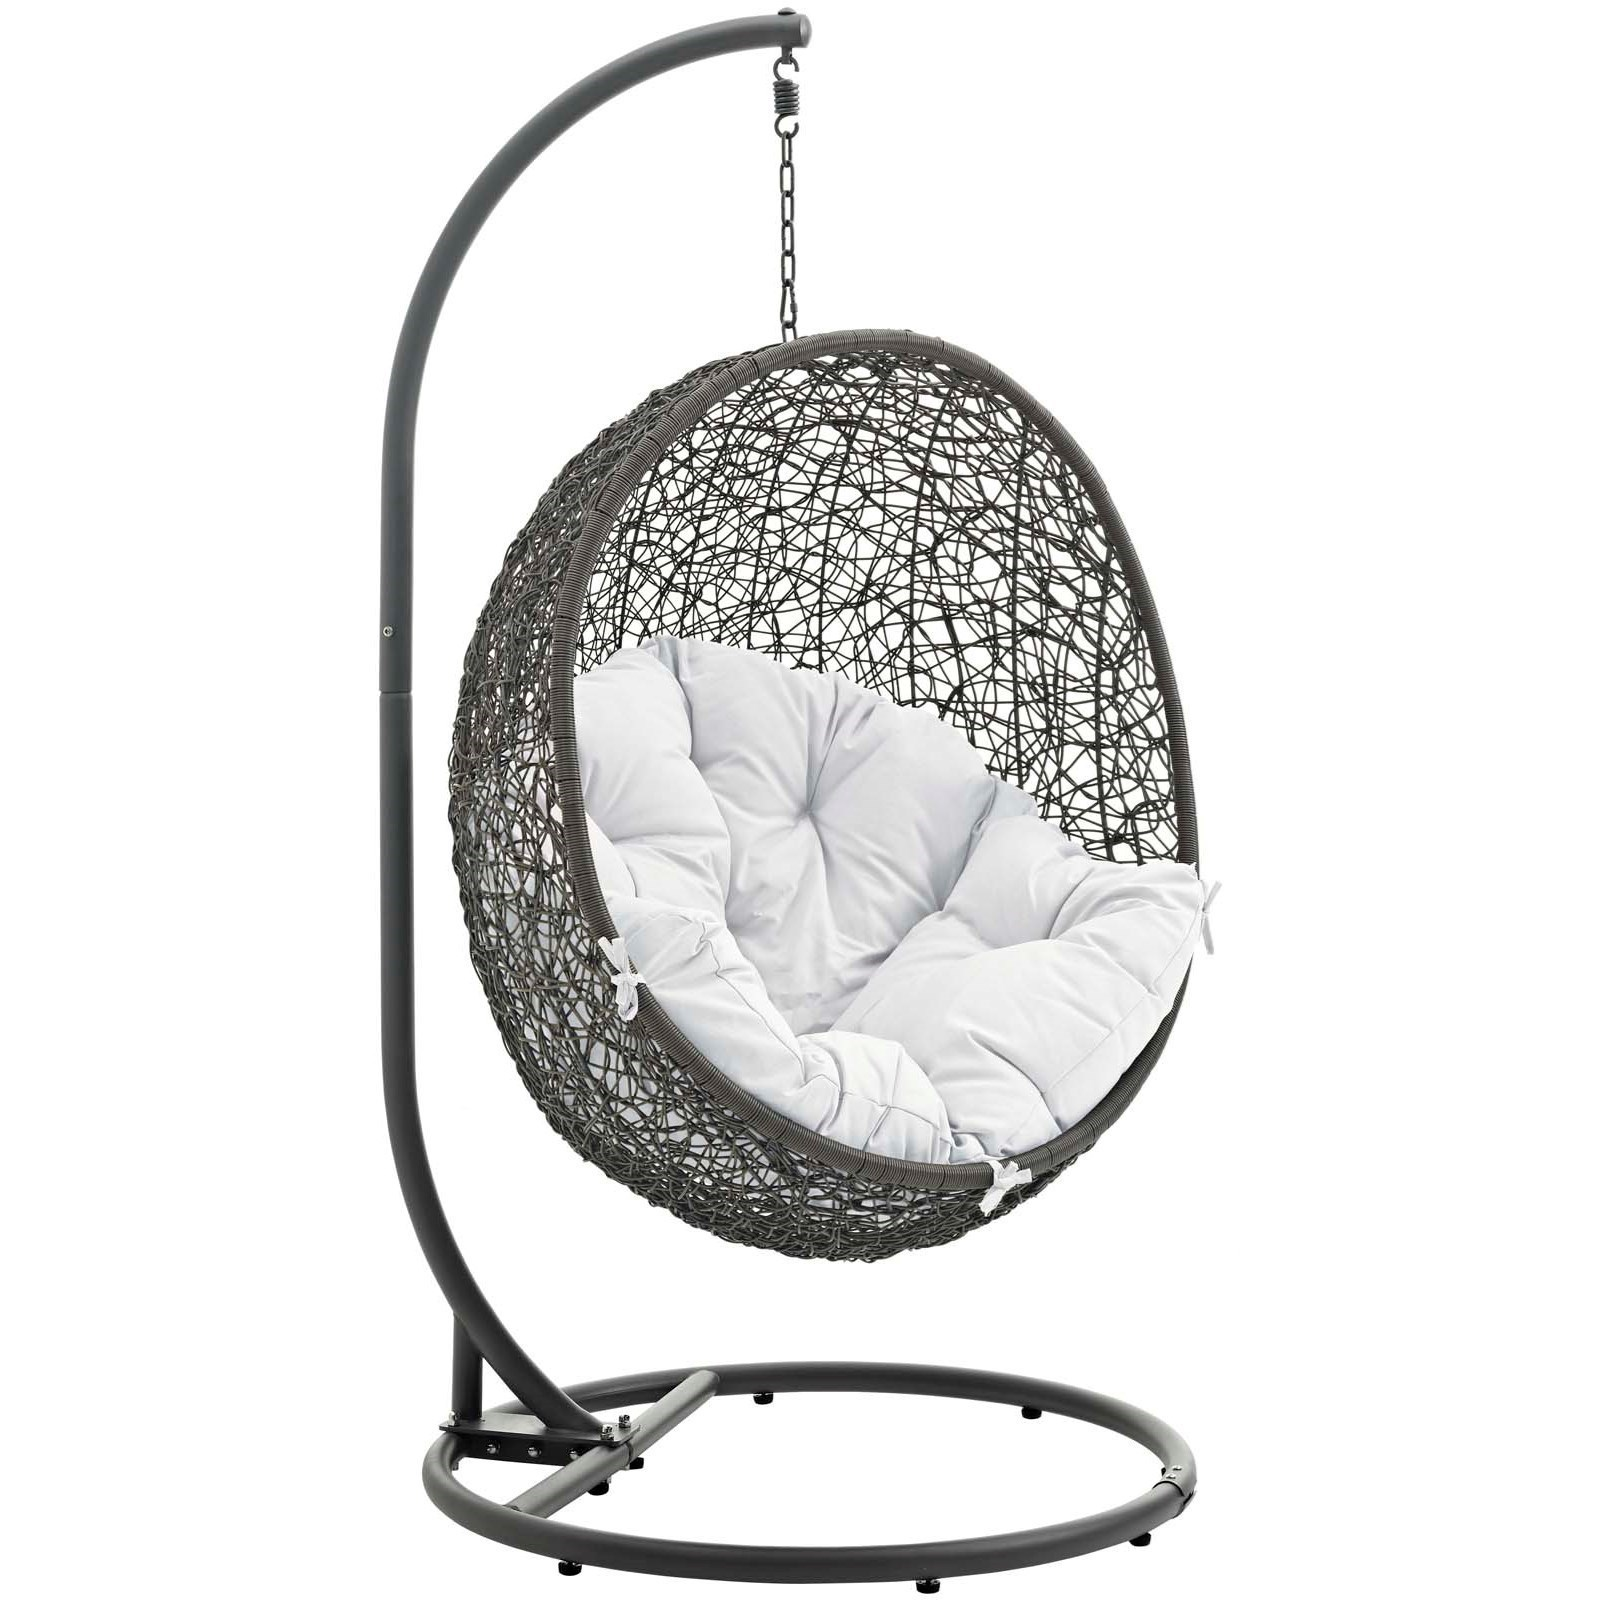 Hide Outdoor Patio Swing Chair With Stand by Modway  sc 1 st  Value City NJ Furniture & Modway Hide Outdoor Patio Swing Chair With Stand | Value City ...